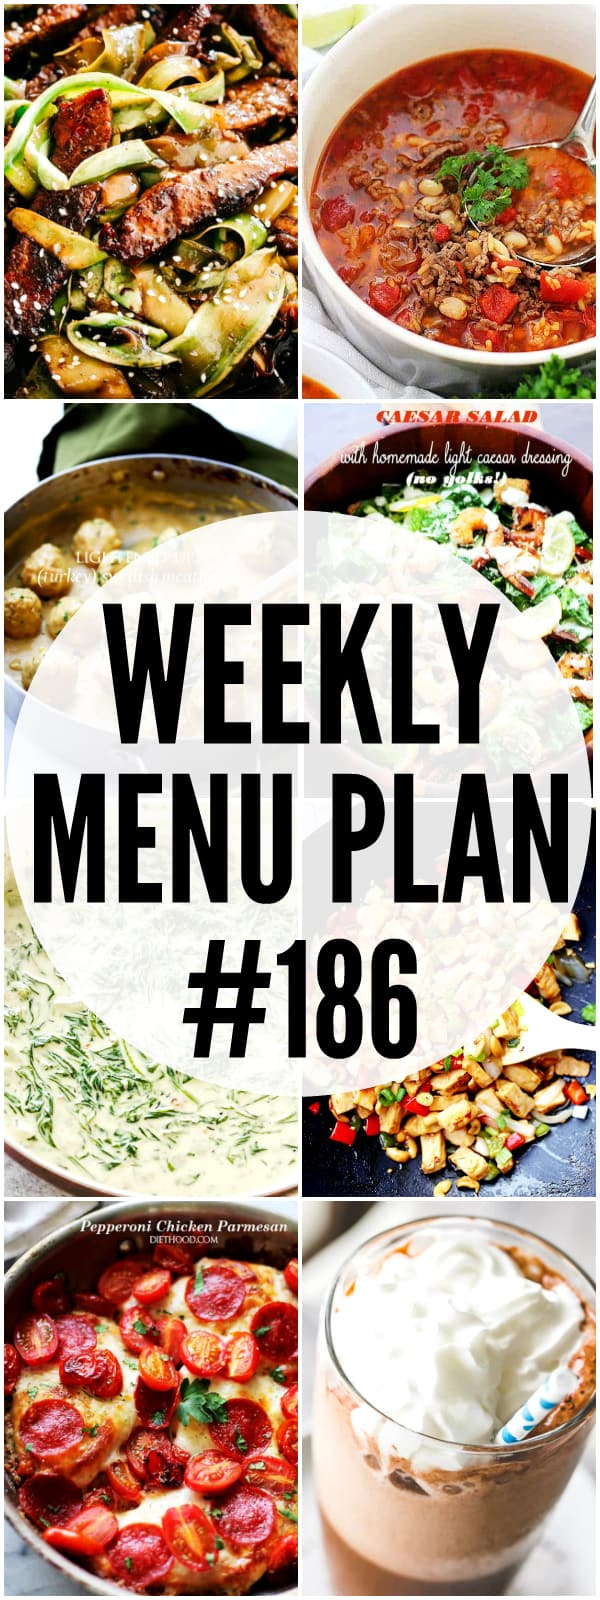 WEEKLY MENU PLAN #186